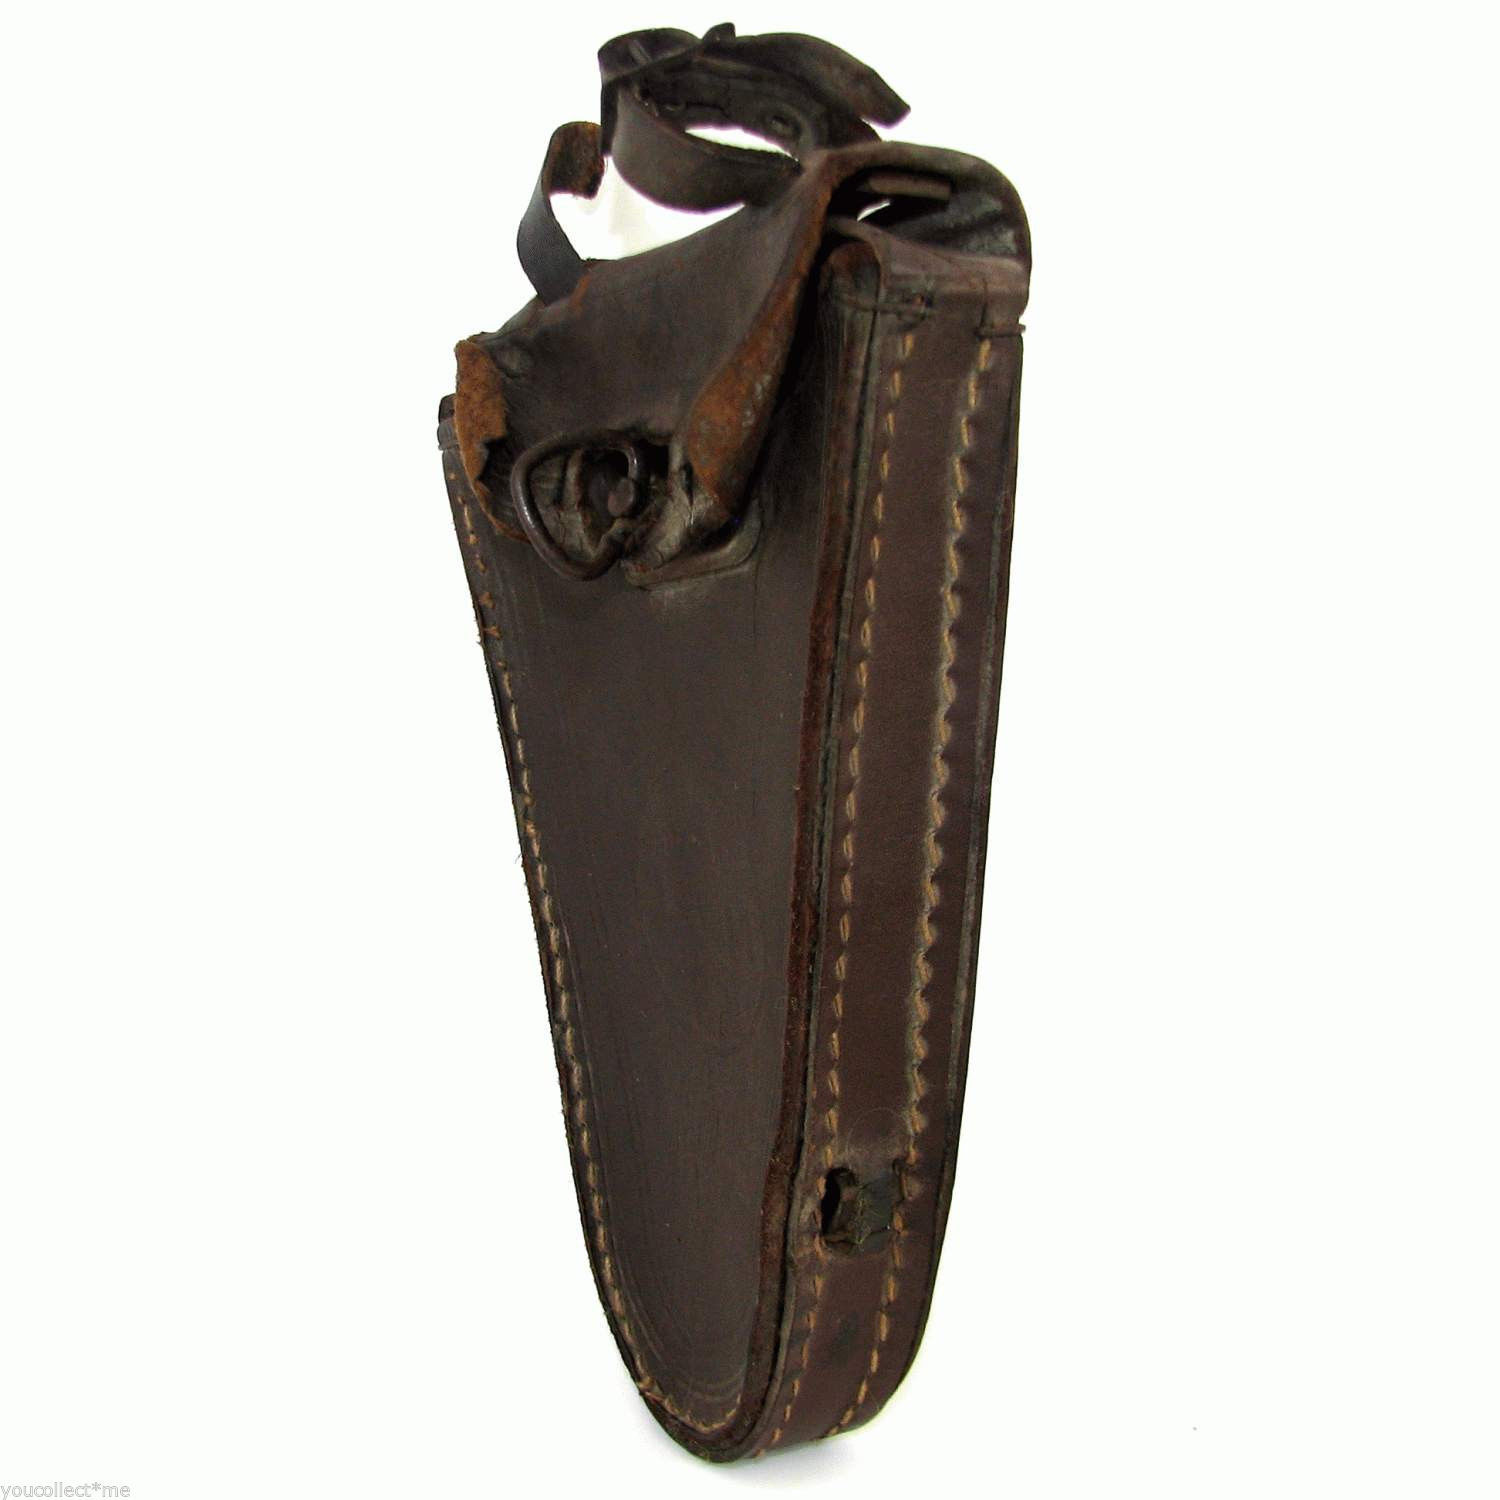 Bicycle Tool Bag : Antique vintage bicycle tool bag pouch case brown real